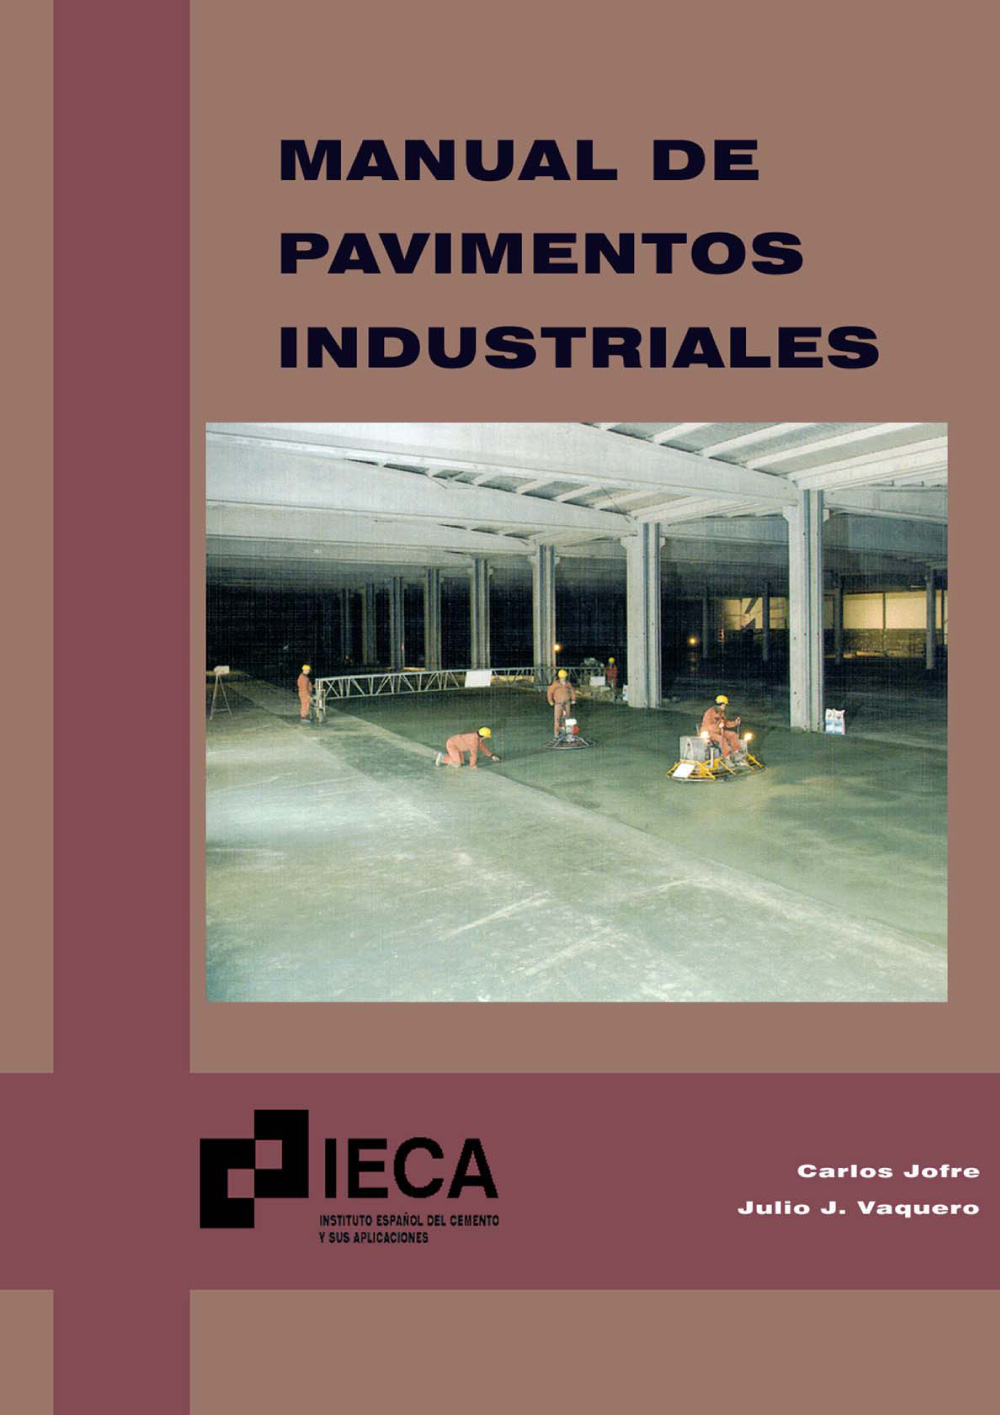 Manual de pavimentos Industriales